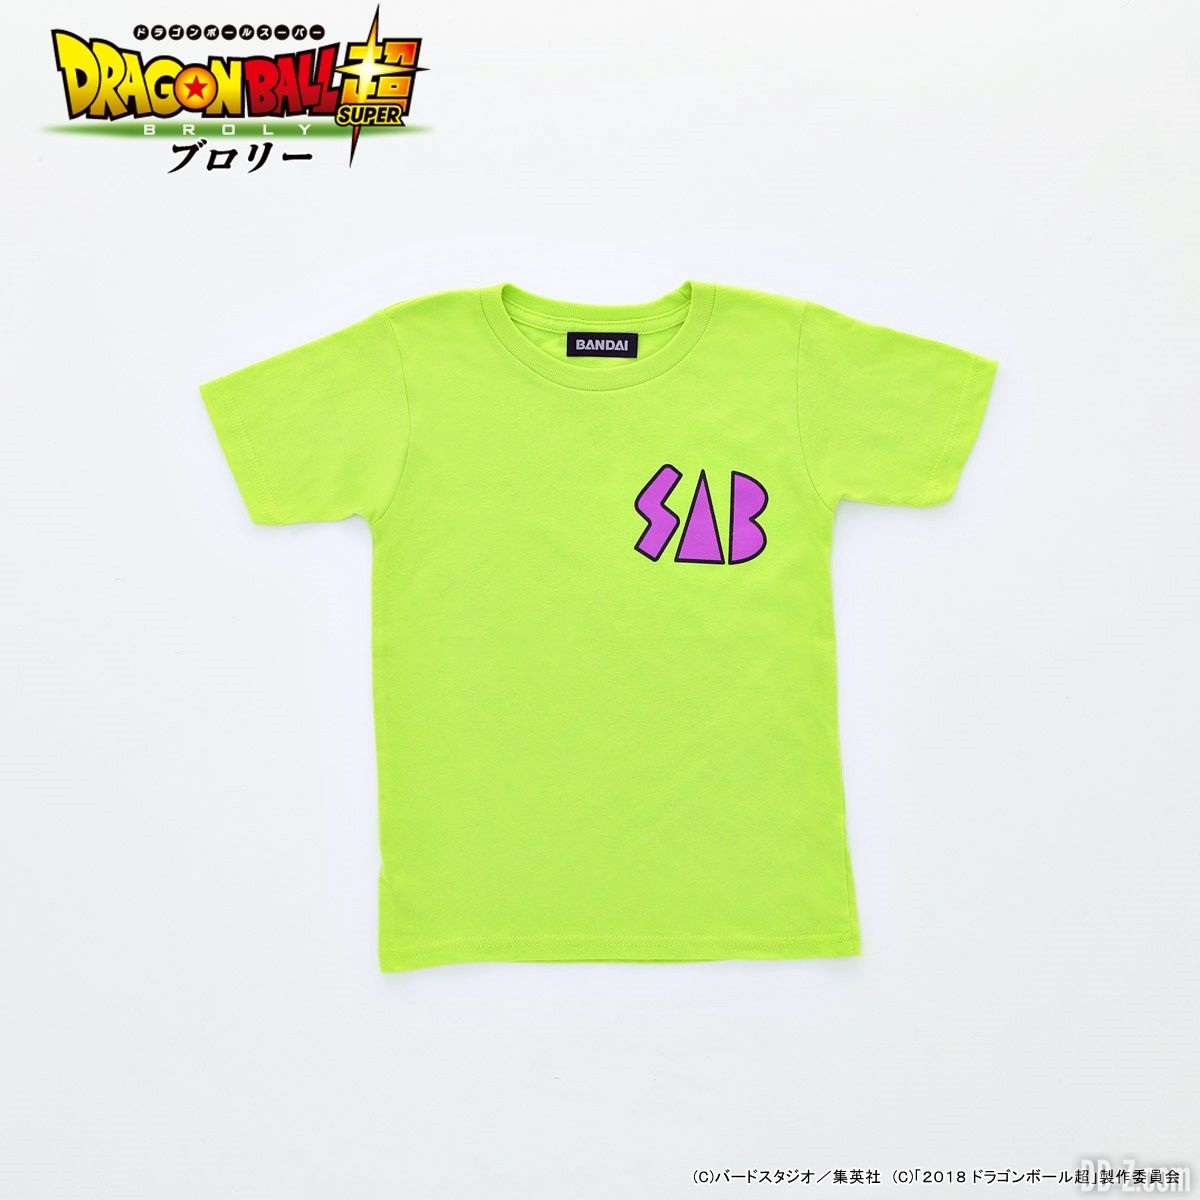 Dragon Ball Super - T-shirt SAB Vegeta